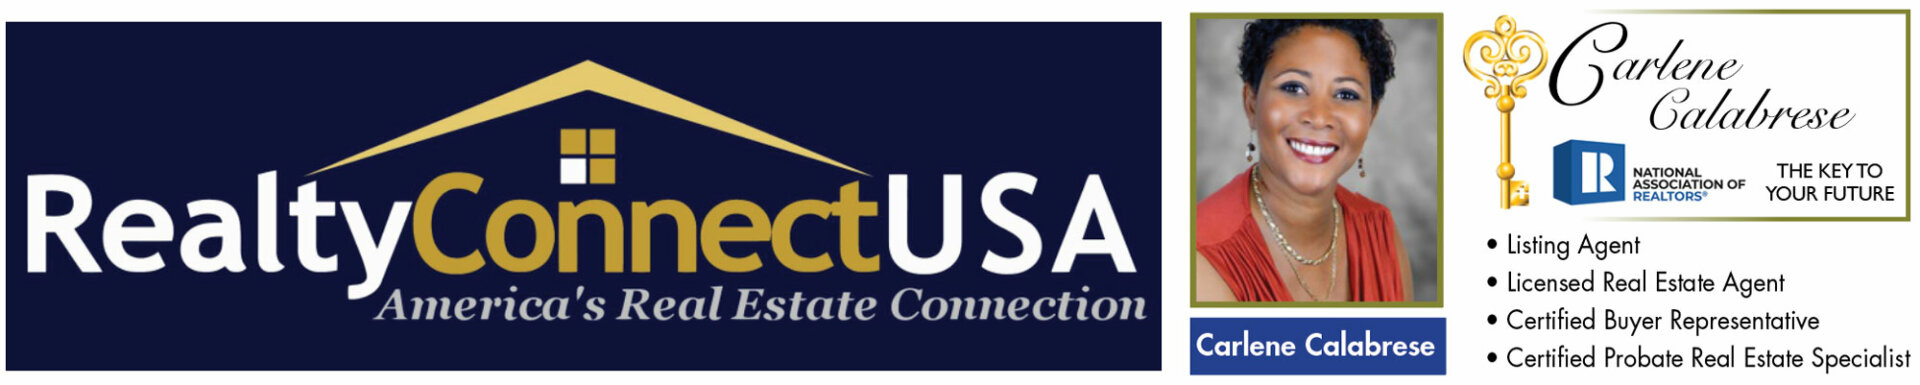 Realty connect USA logo